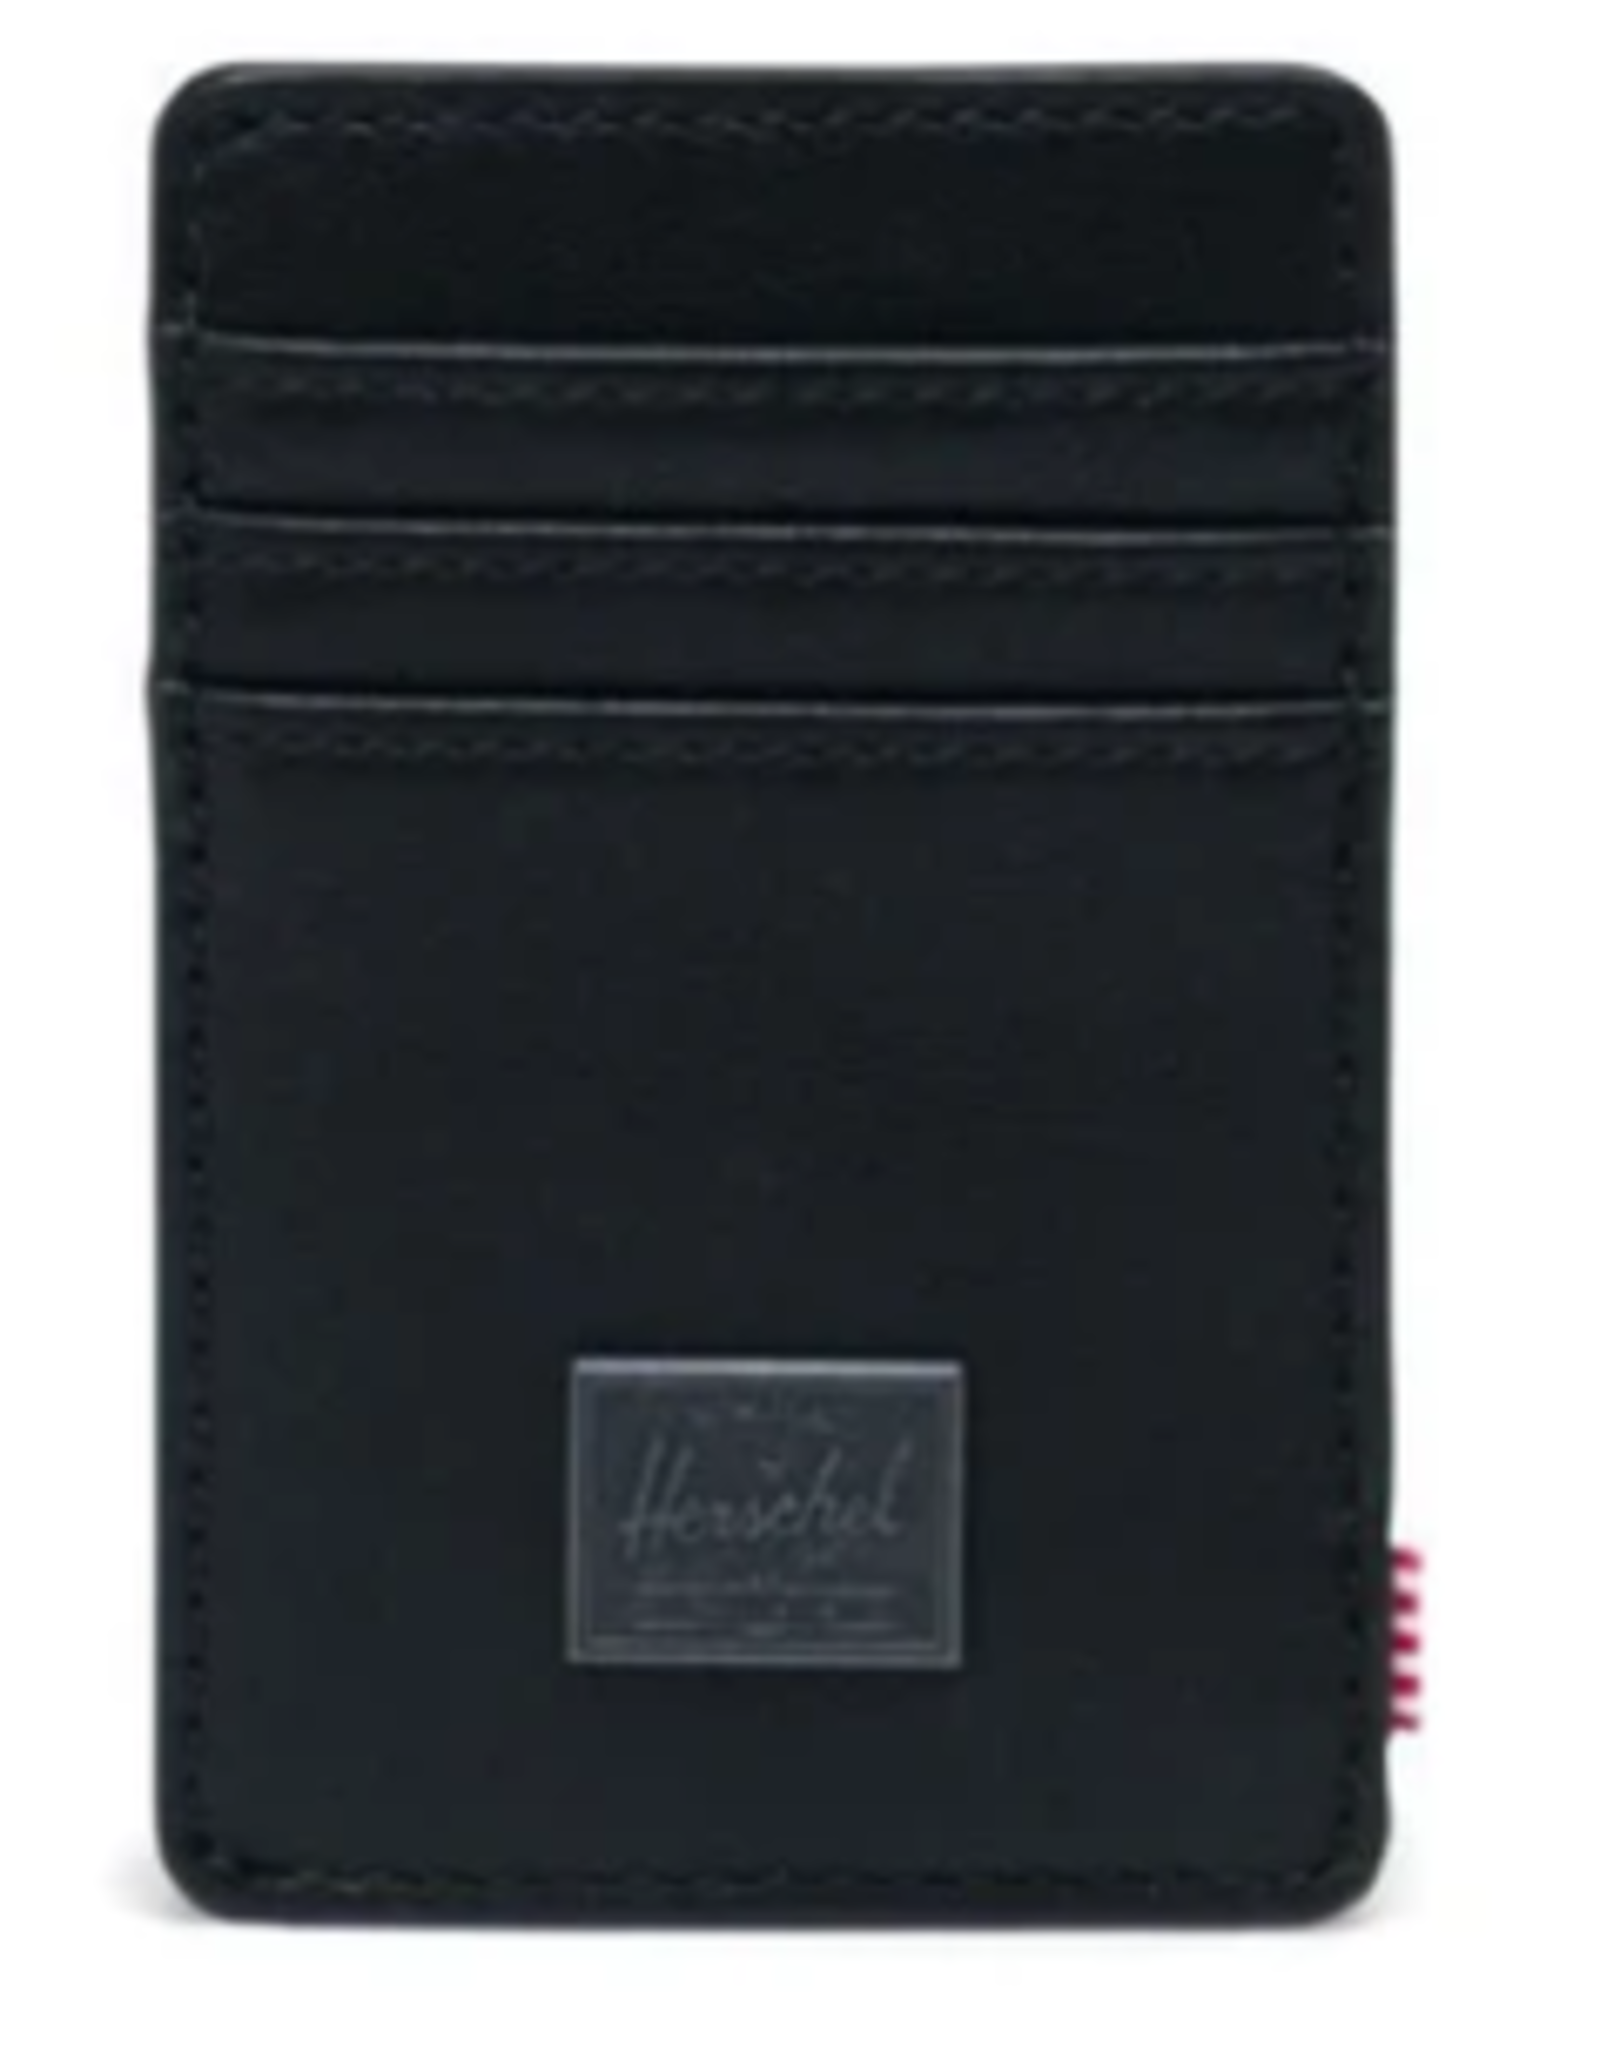 HERSCHEL HERSCHEL RAVEN LEATHER BLACK WALLET